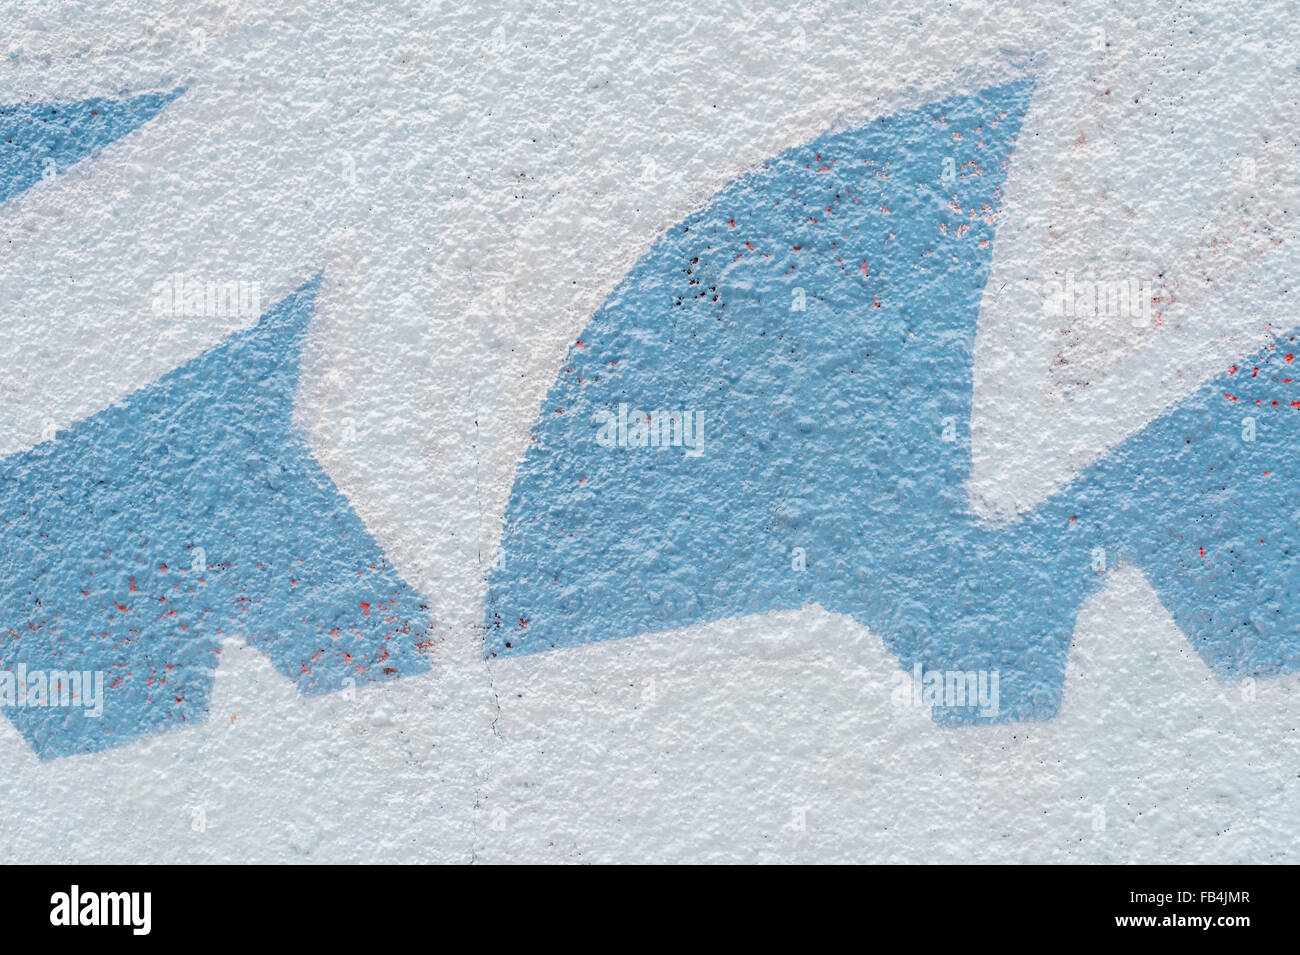 White cement wall with geometrical blue forms - Stock Image